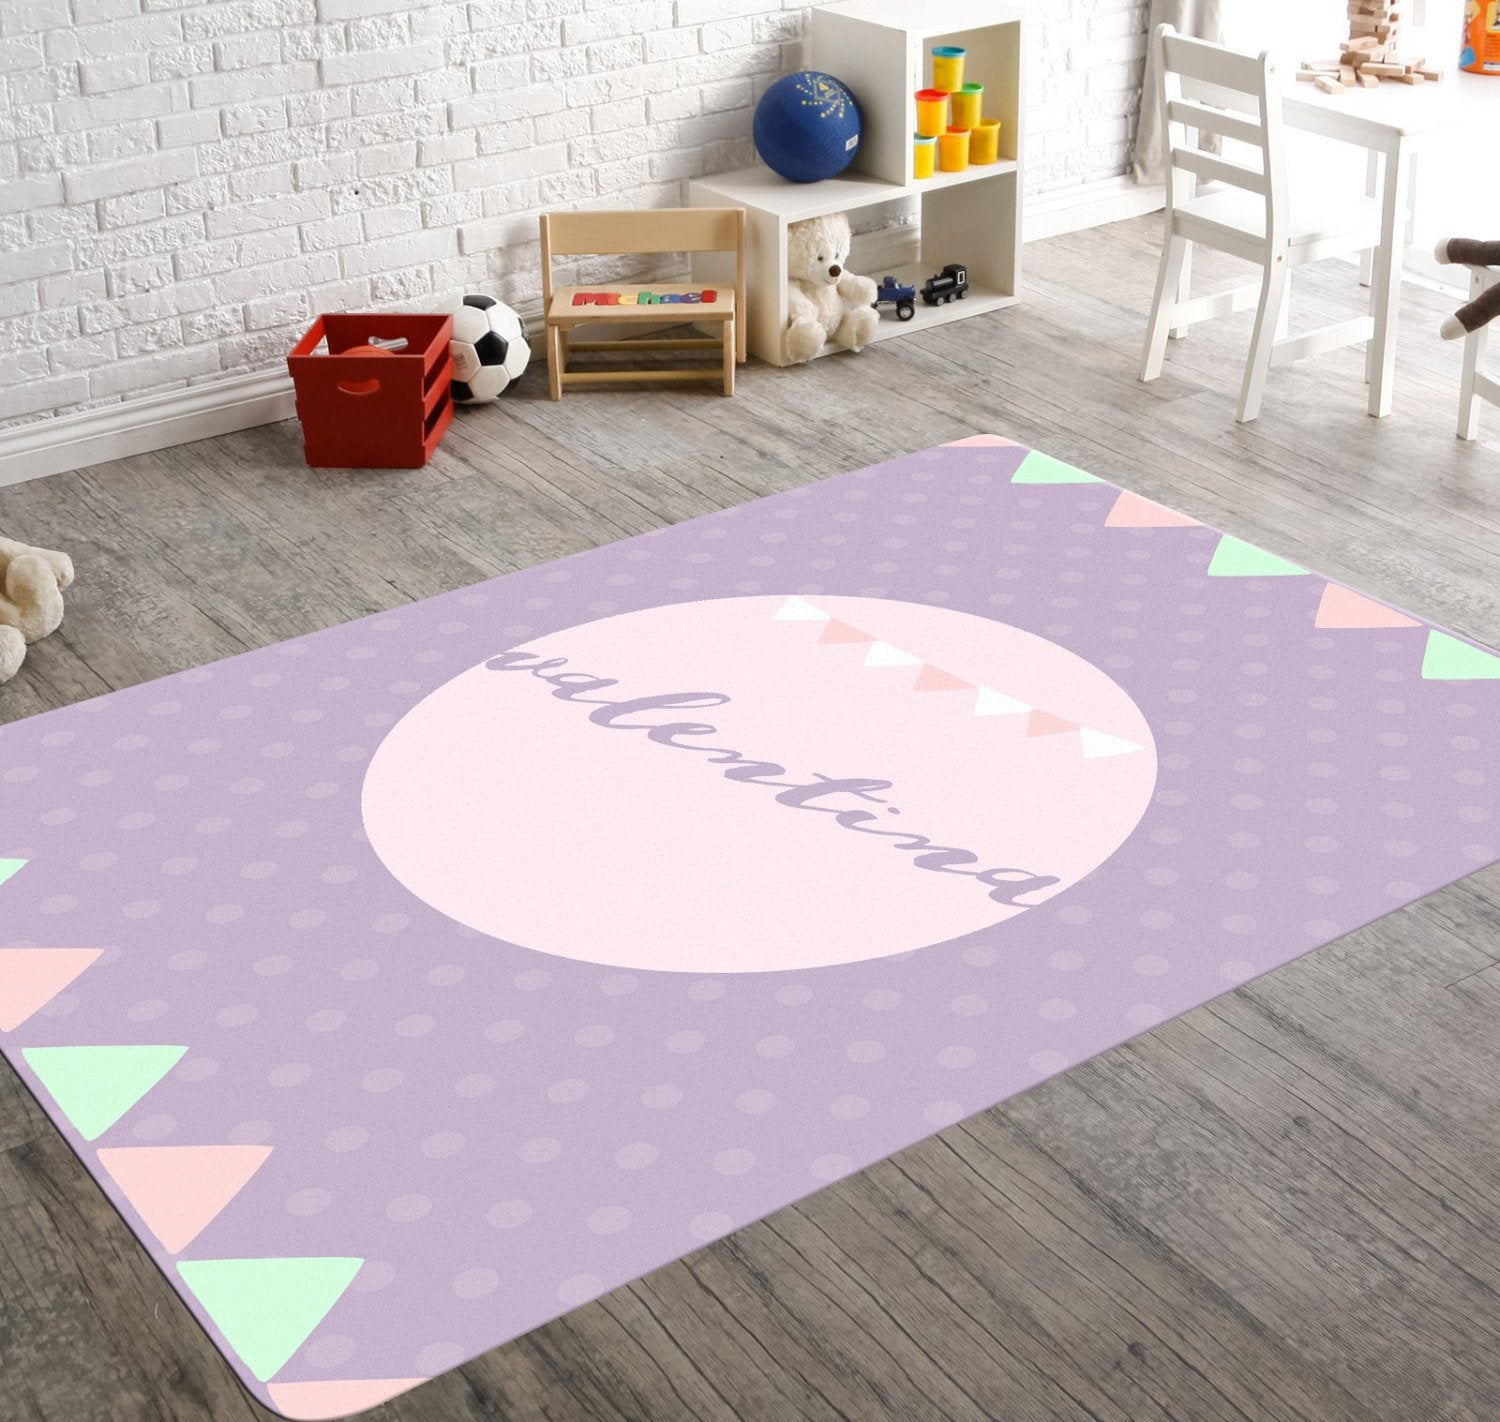 rectangular polka dotted nursery rug with green and pink playful buntings. Shades of lavender in colour and can be personalized.